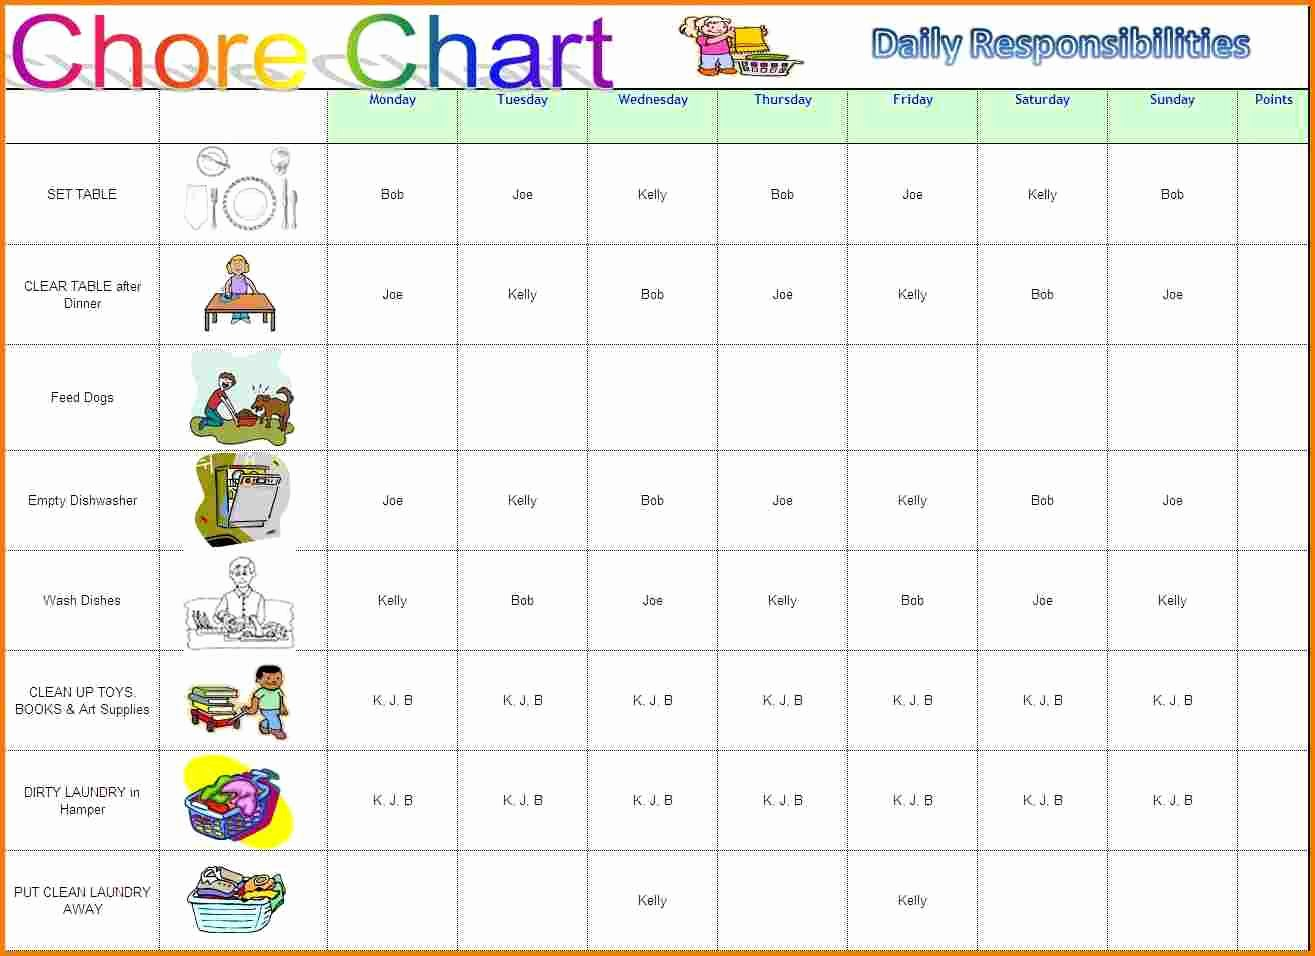 Chore Chart Templates Excel Best Of Chore Chart Template